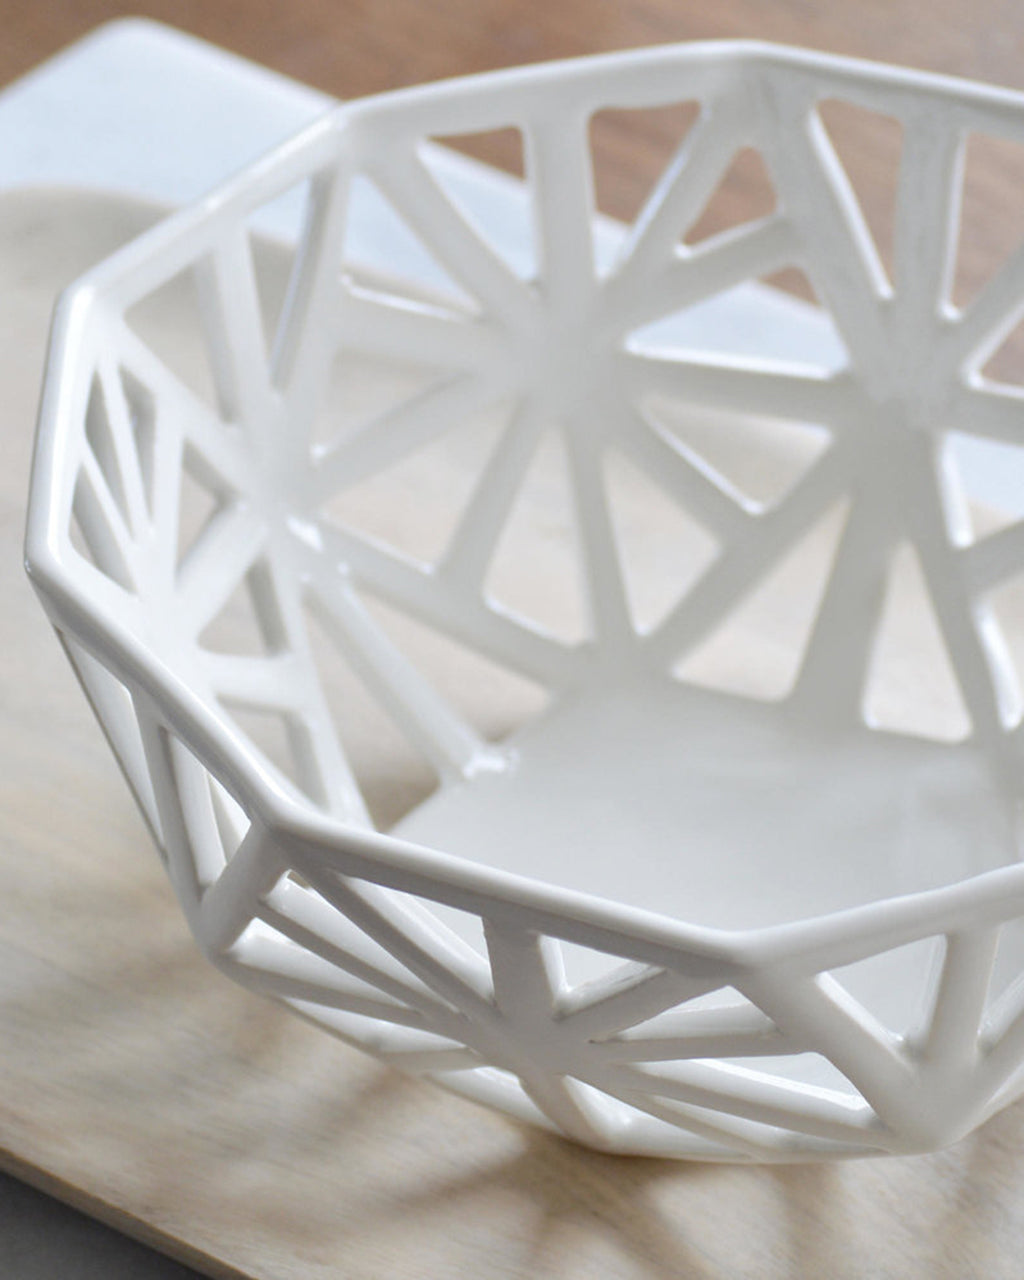 Geodesic Countertop Fruit Bowl | Convivial Production